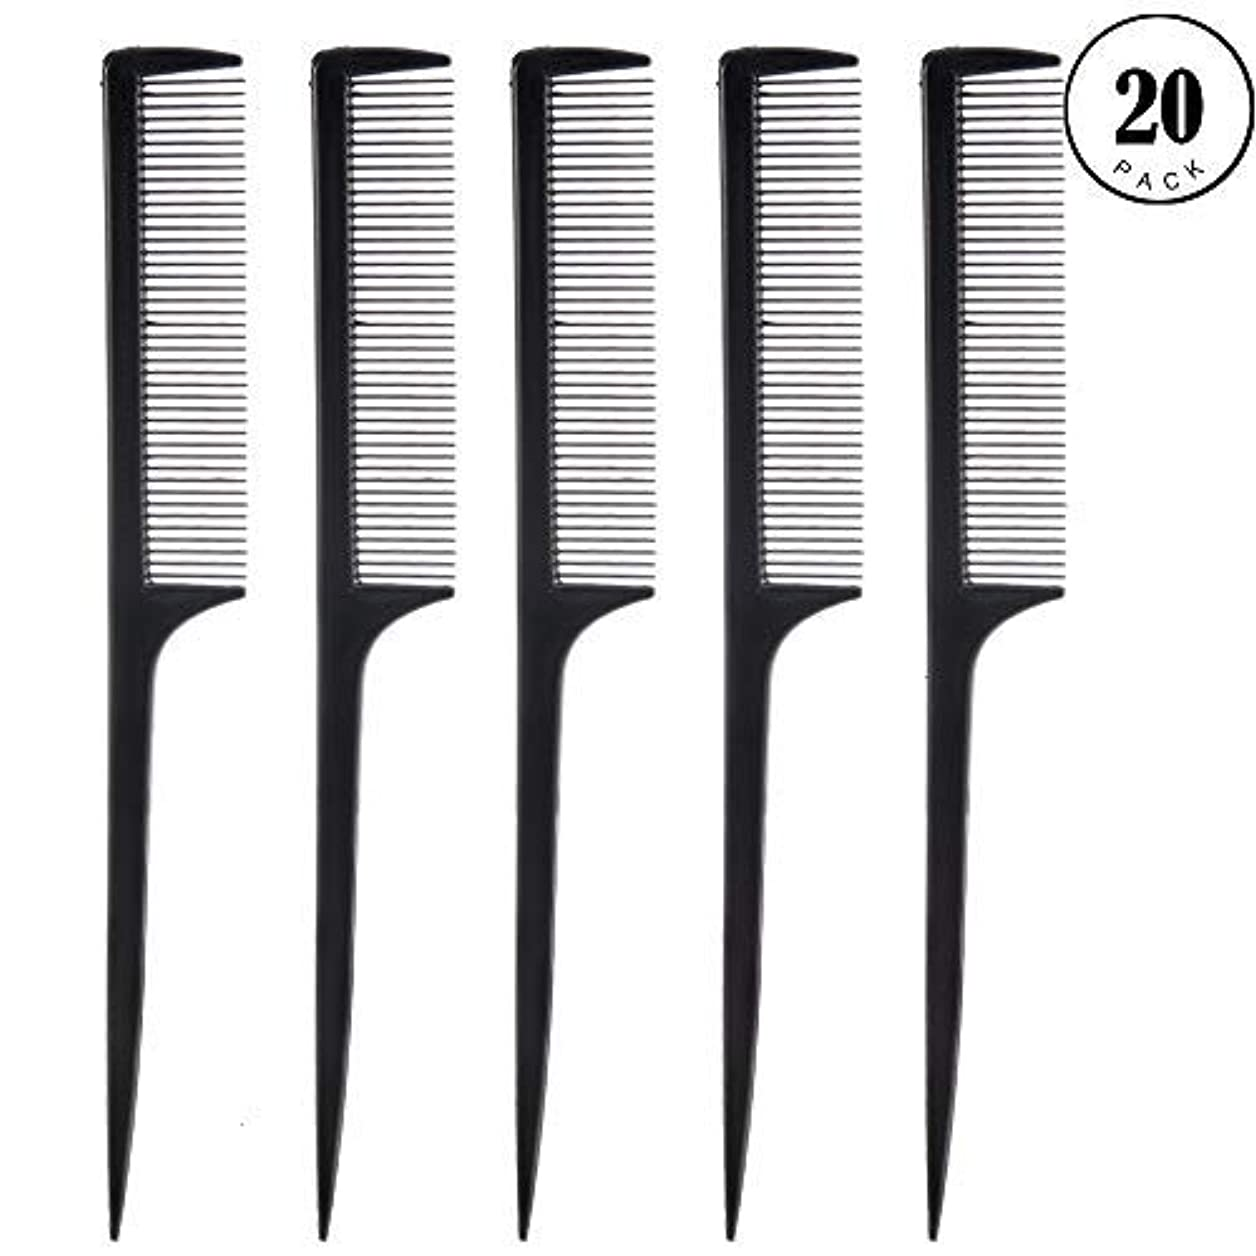 引っ張る司教ローブFeeko Comb, 20 Pieces 21CM Plastic Lightweight Rat Tail Comb All Hair Types Black [並行輸入品]